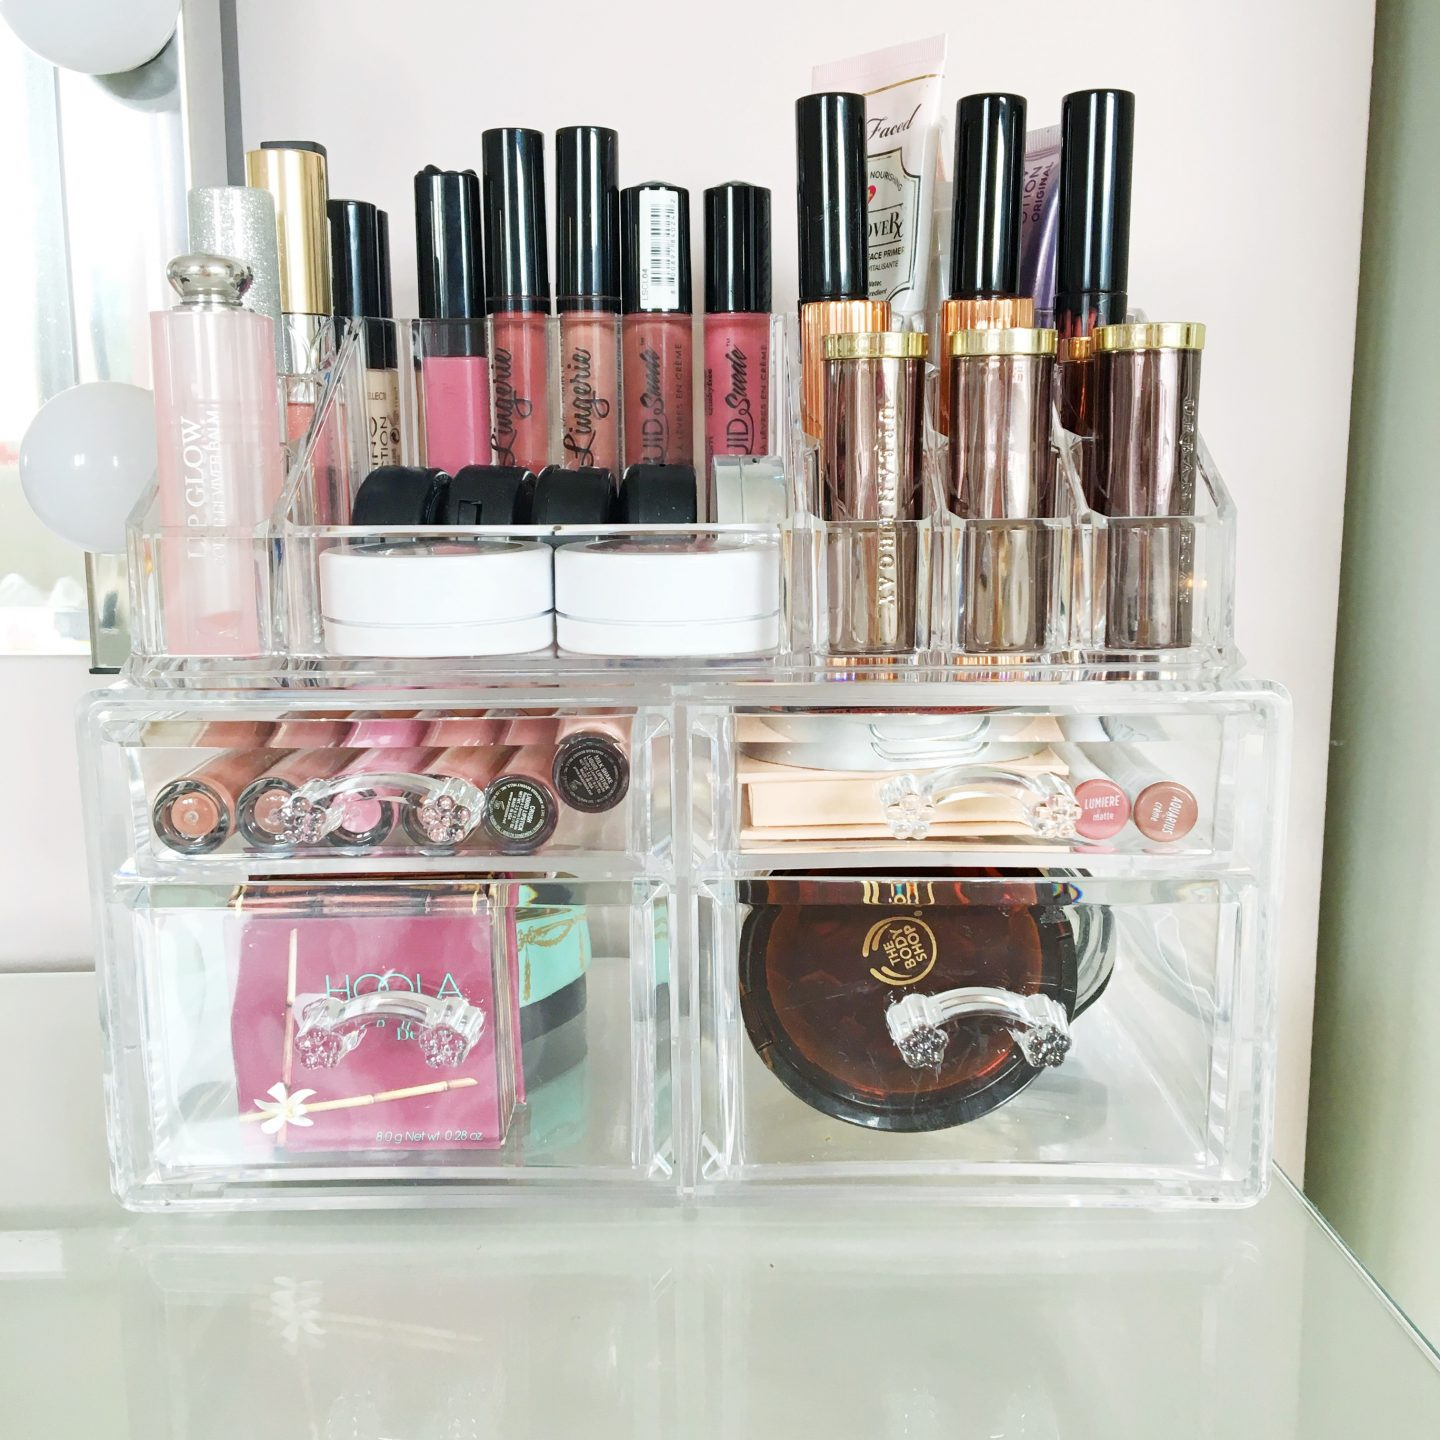 Songmics Acrylic Makeup Storage Review and GIVEAWAY!*